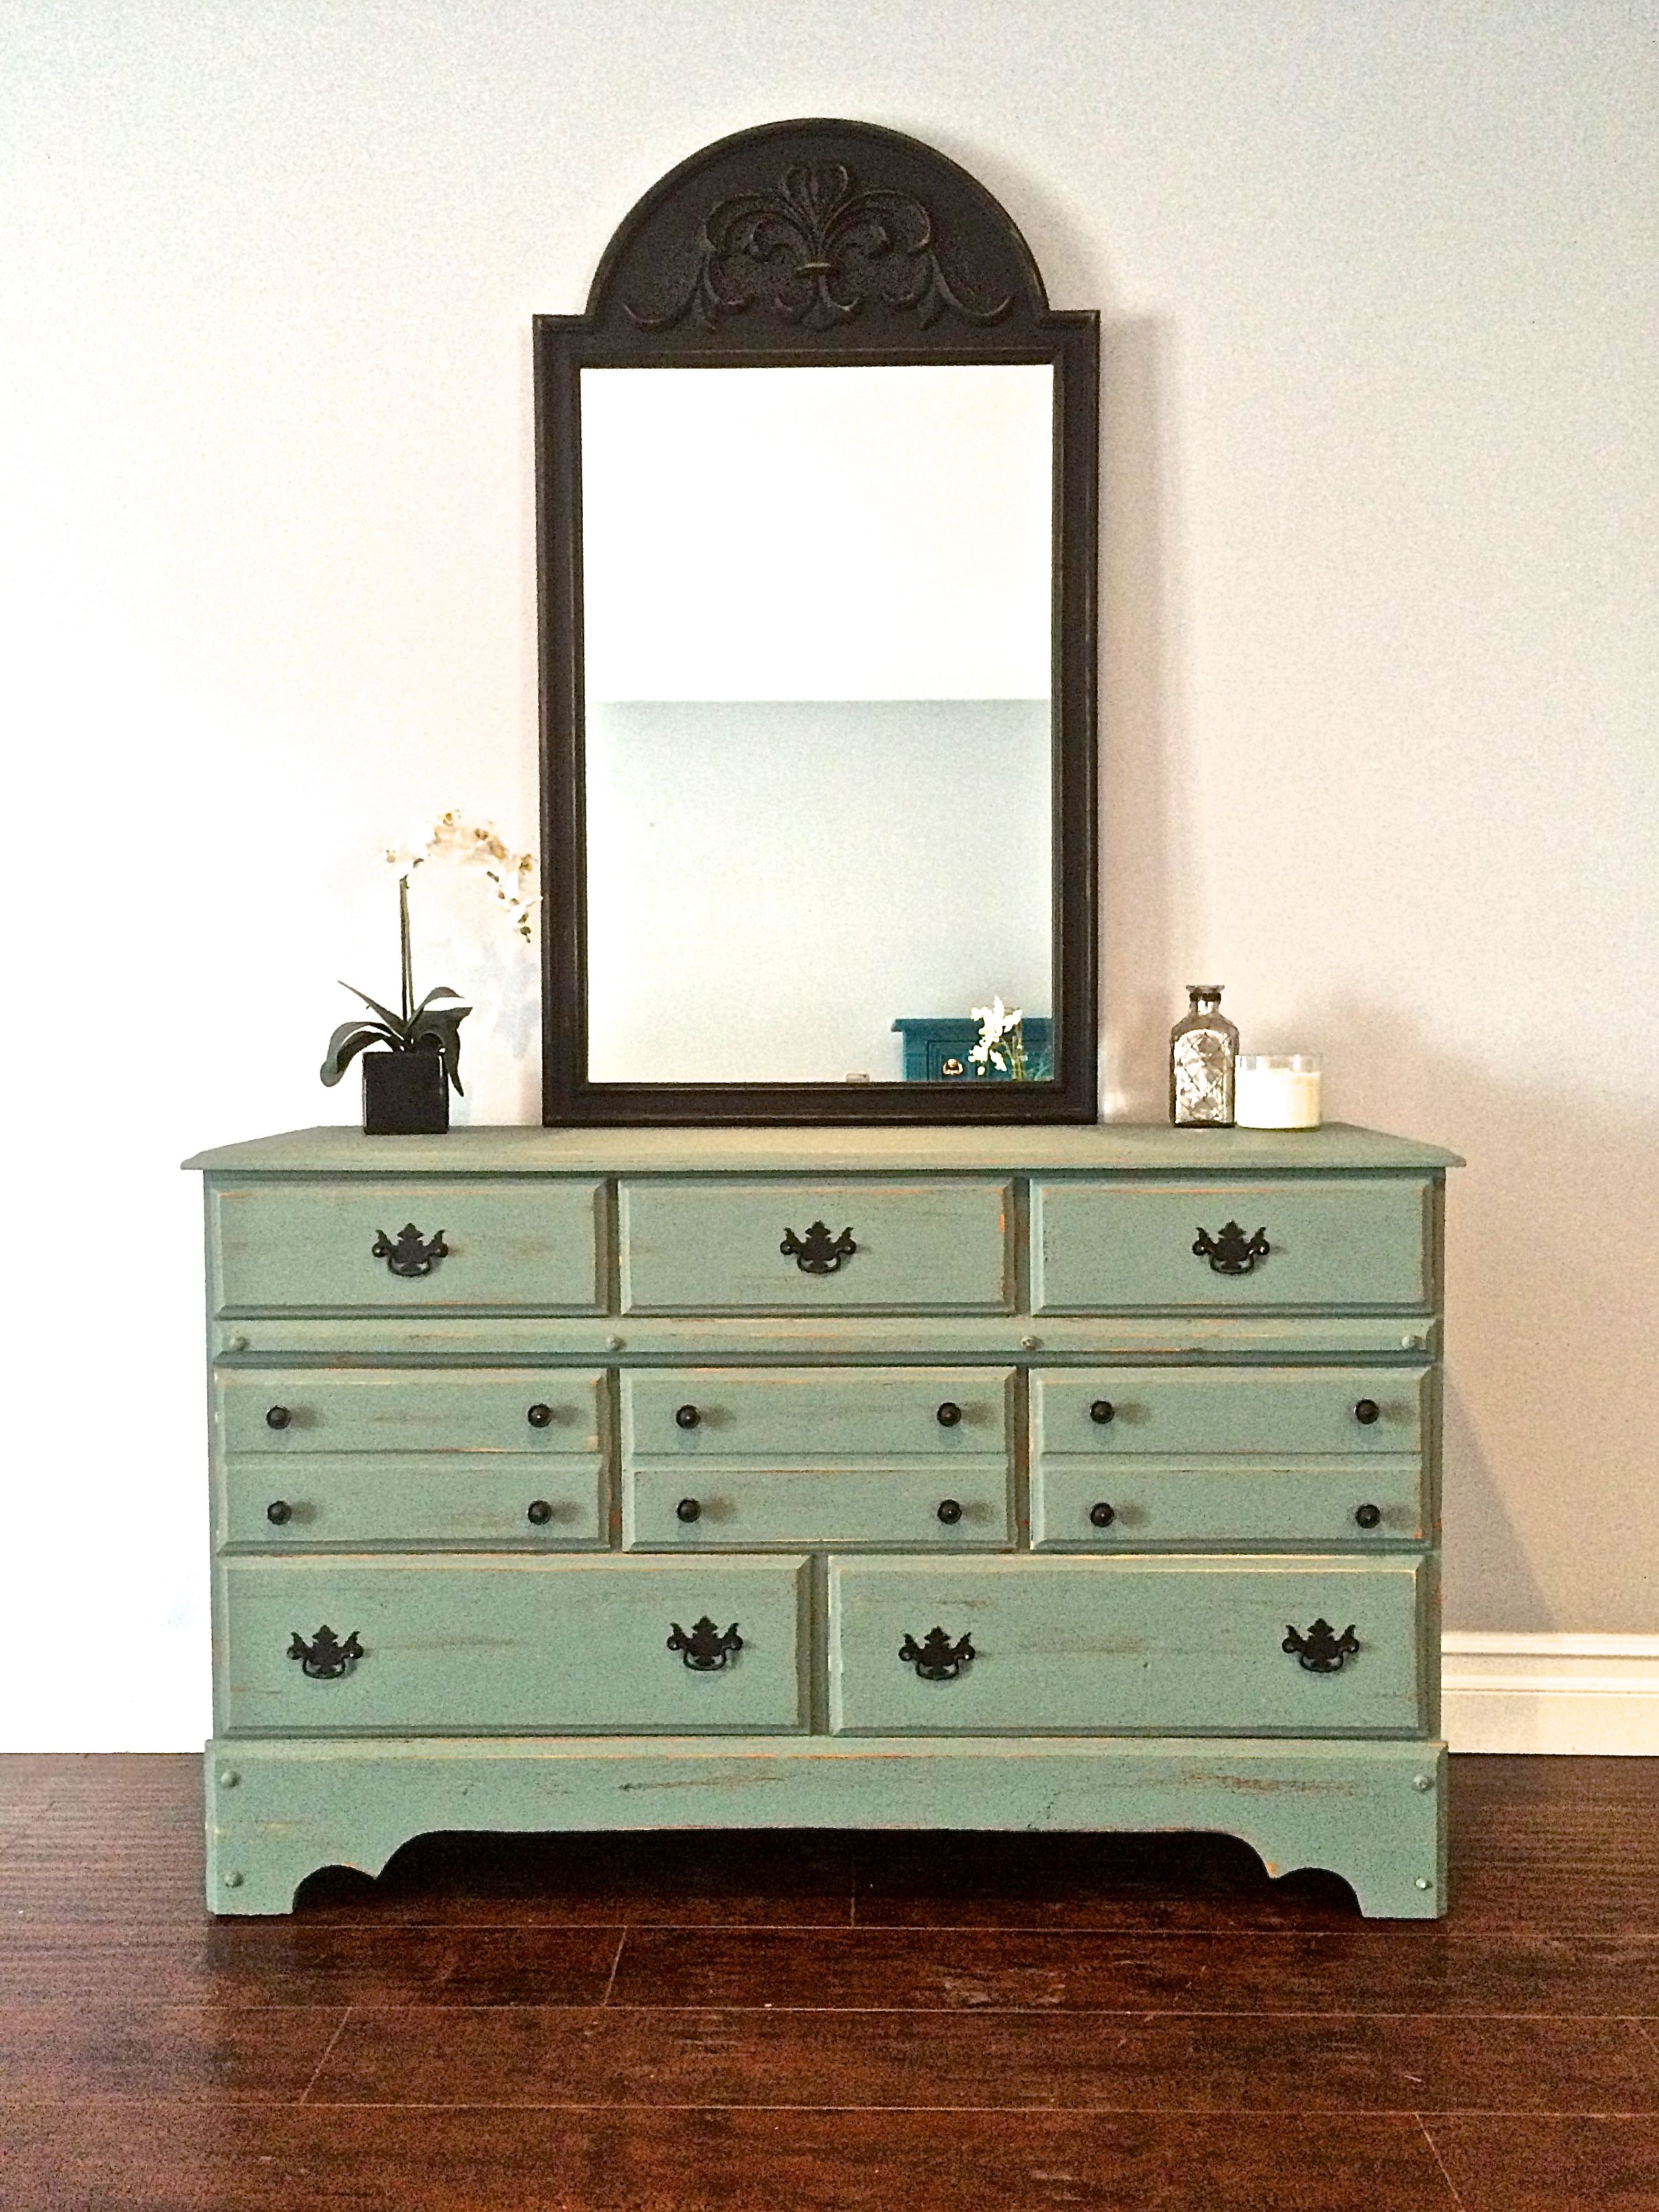 Shabby Chic Green U0026 Black 8 Drawer Dresser + Mirror Set   $400   SOLD